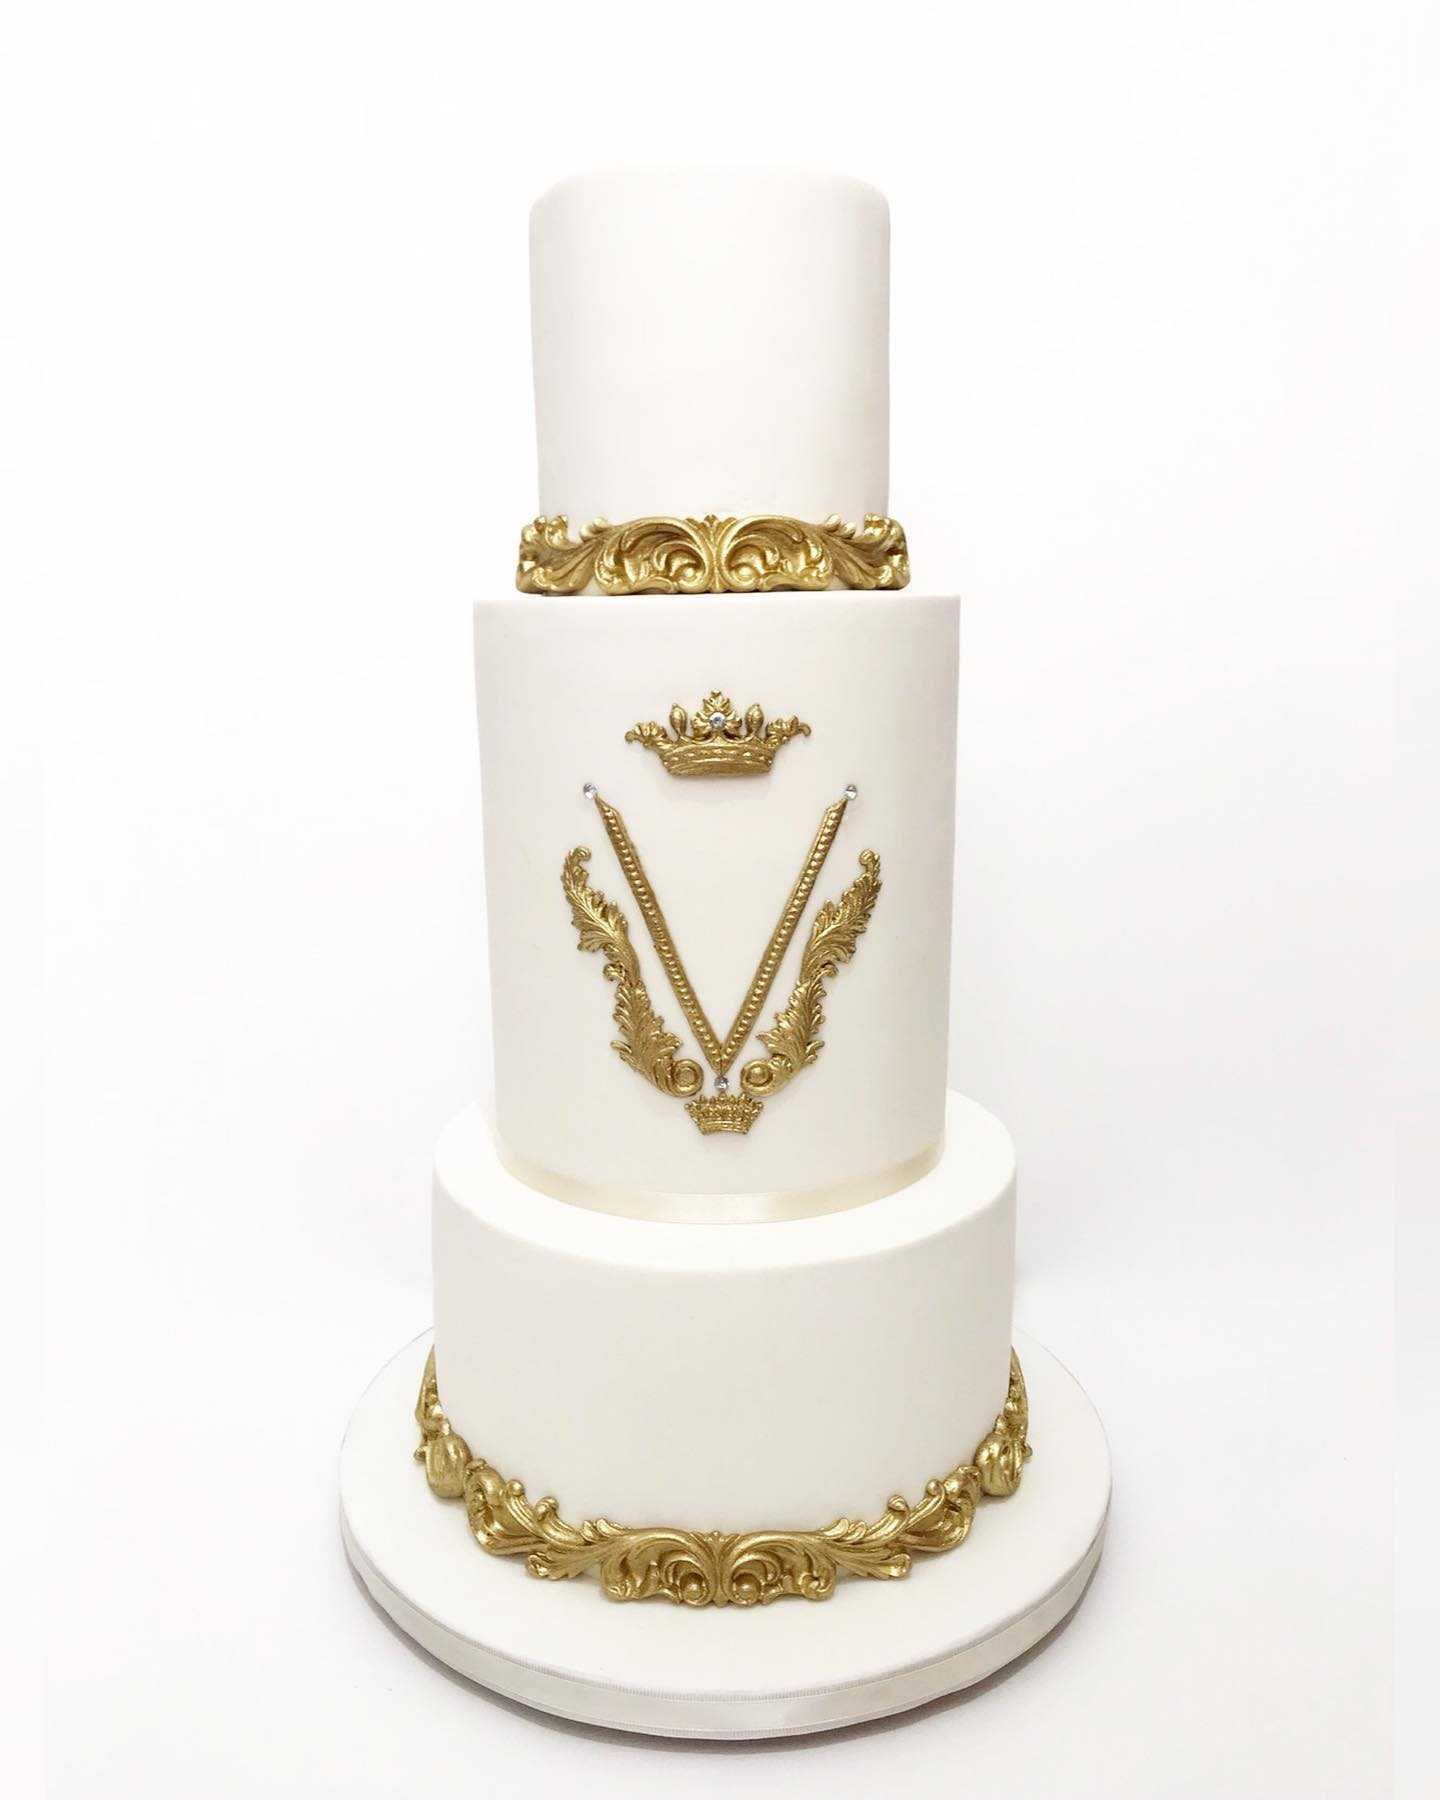 Chris Aranda Chris Aranda Cake Design Wedding Elegant 12